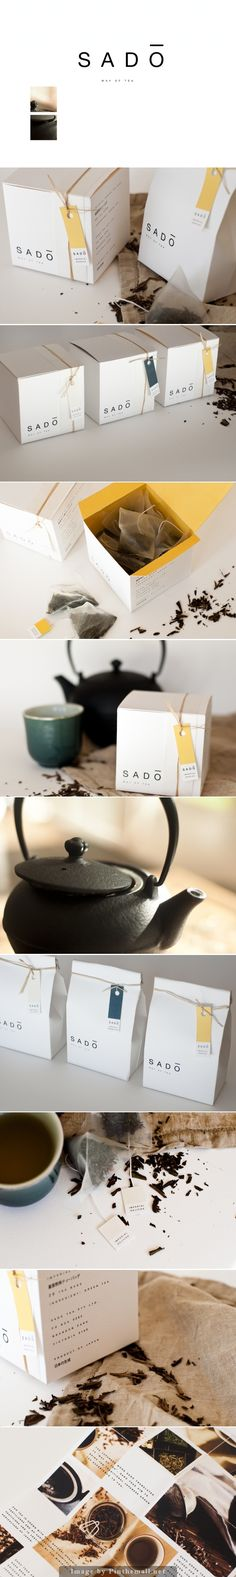 Got time time for some Sado Tea and design inspiration by Emma Goddard curated by Packaging Diva PD. Japanese Packaging, Tea Packaging, Brand Packaging, Japanese Branding, Japanese Typography, Paper Packaging, Design Packaging, Product Packaging, Corporate Design